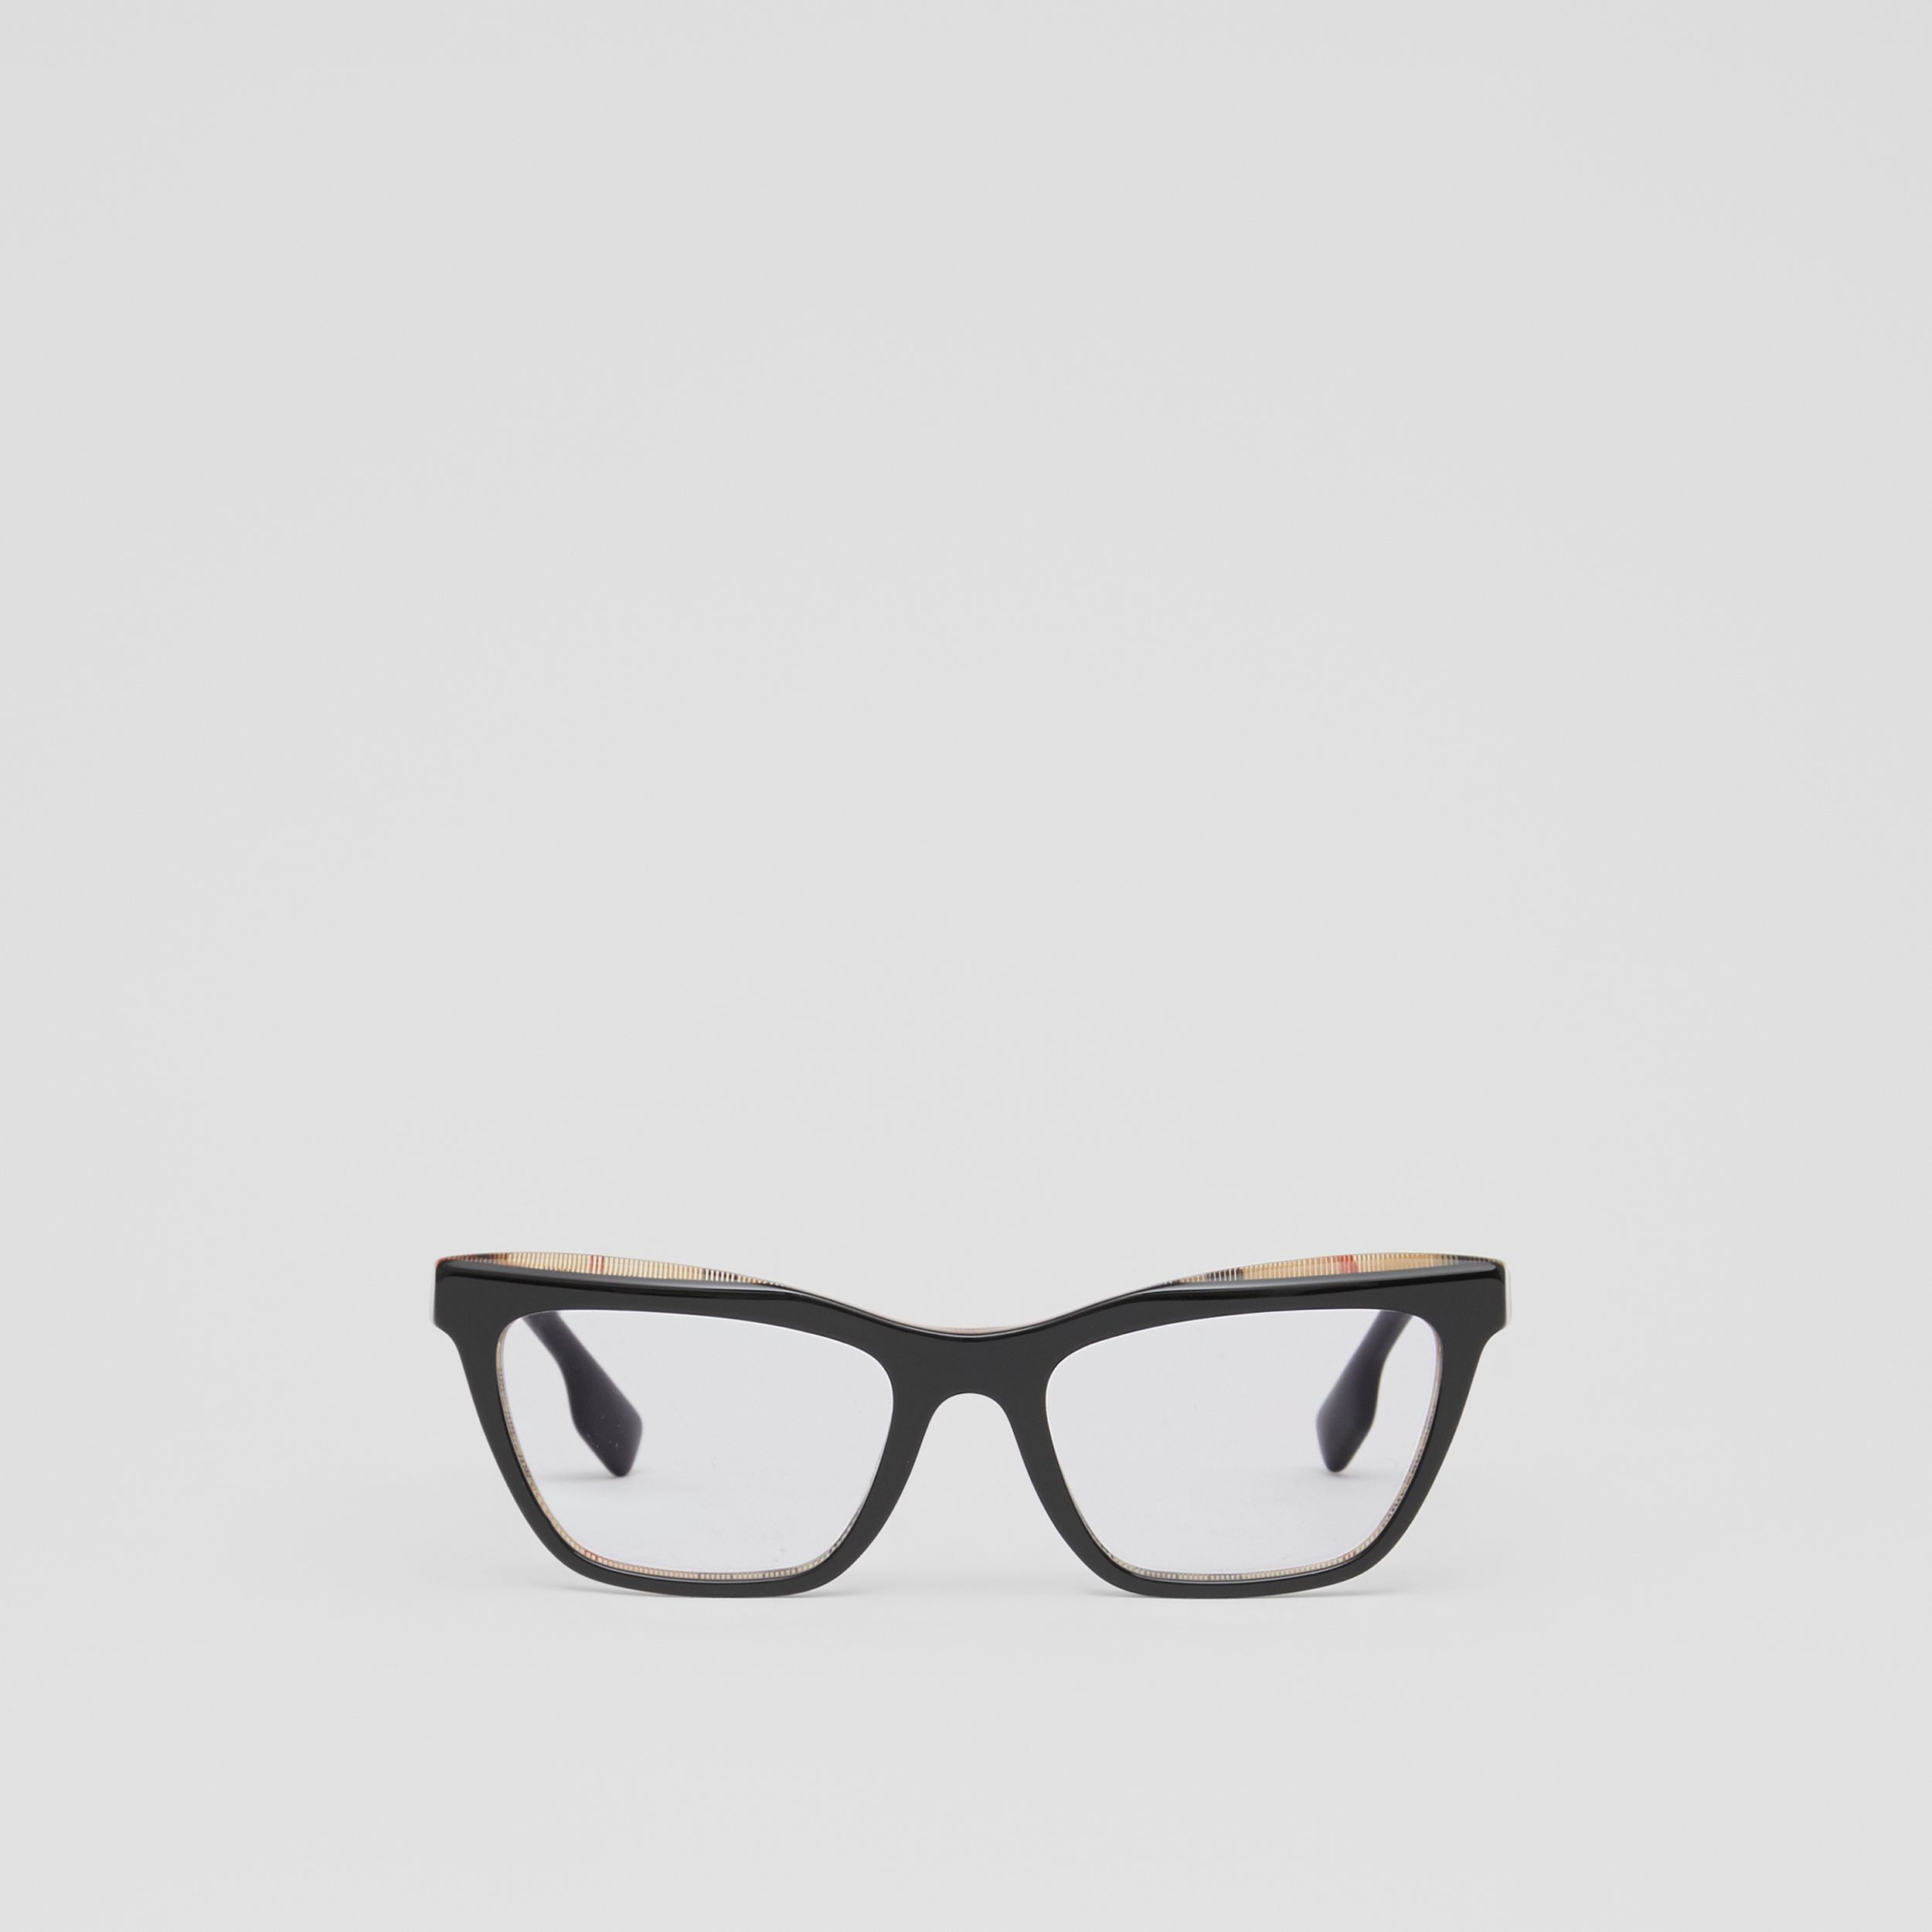 Rectangular Optical Frames in Black/beige - Women | Burberry United States - 1